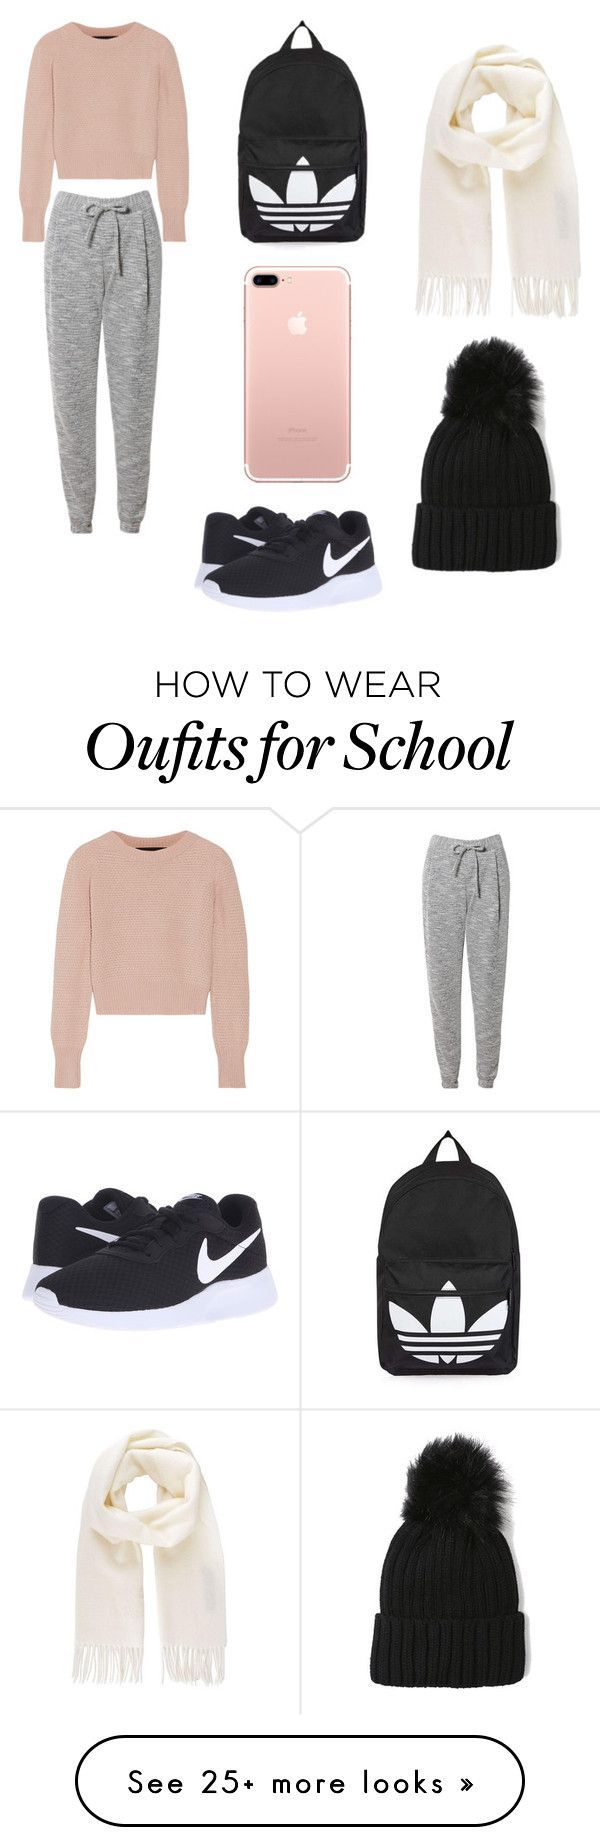 nike shoes Lazy Day at School by xxgirlstylesxx on Polyvore featuring The Elder Statesman, Related, NIKE, Topshop and Vivienne Westwood